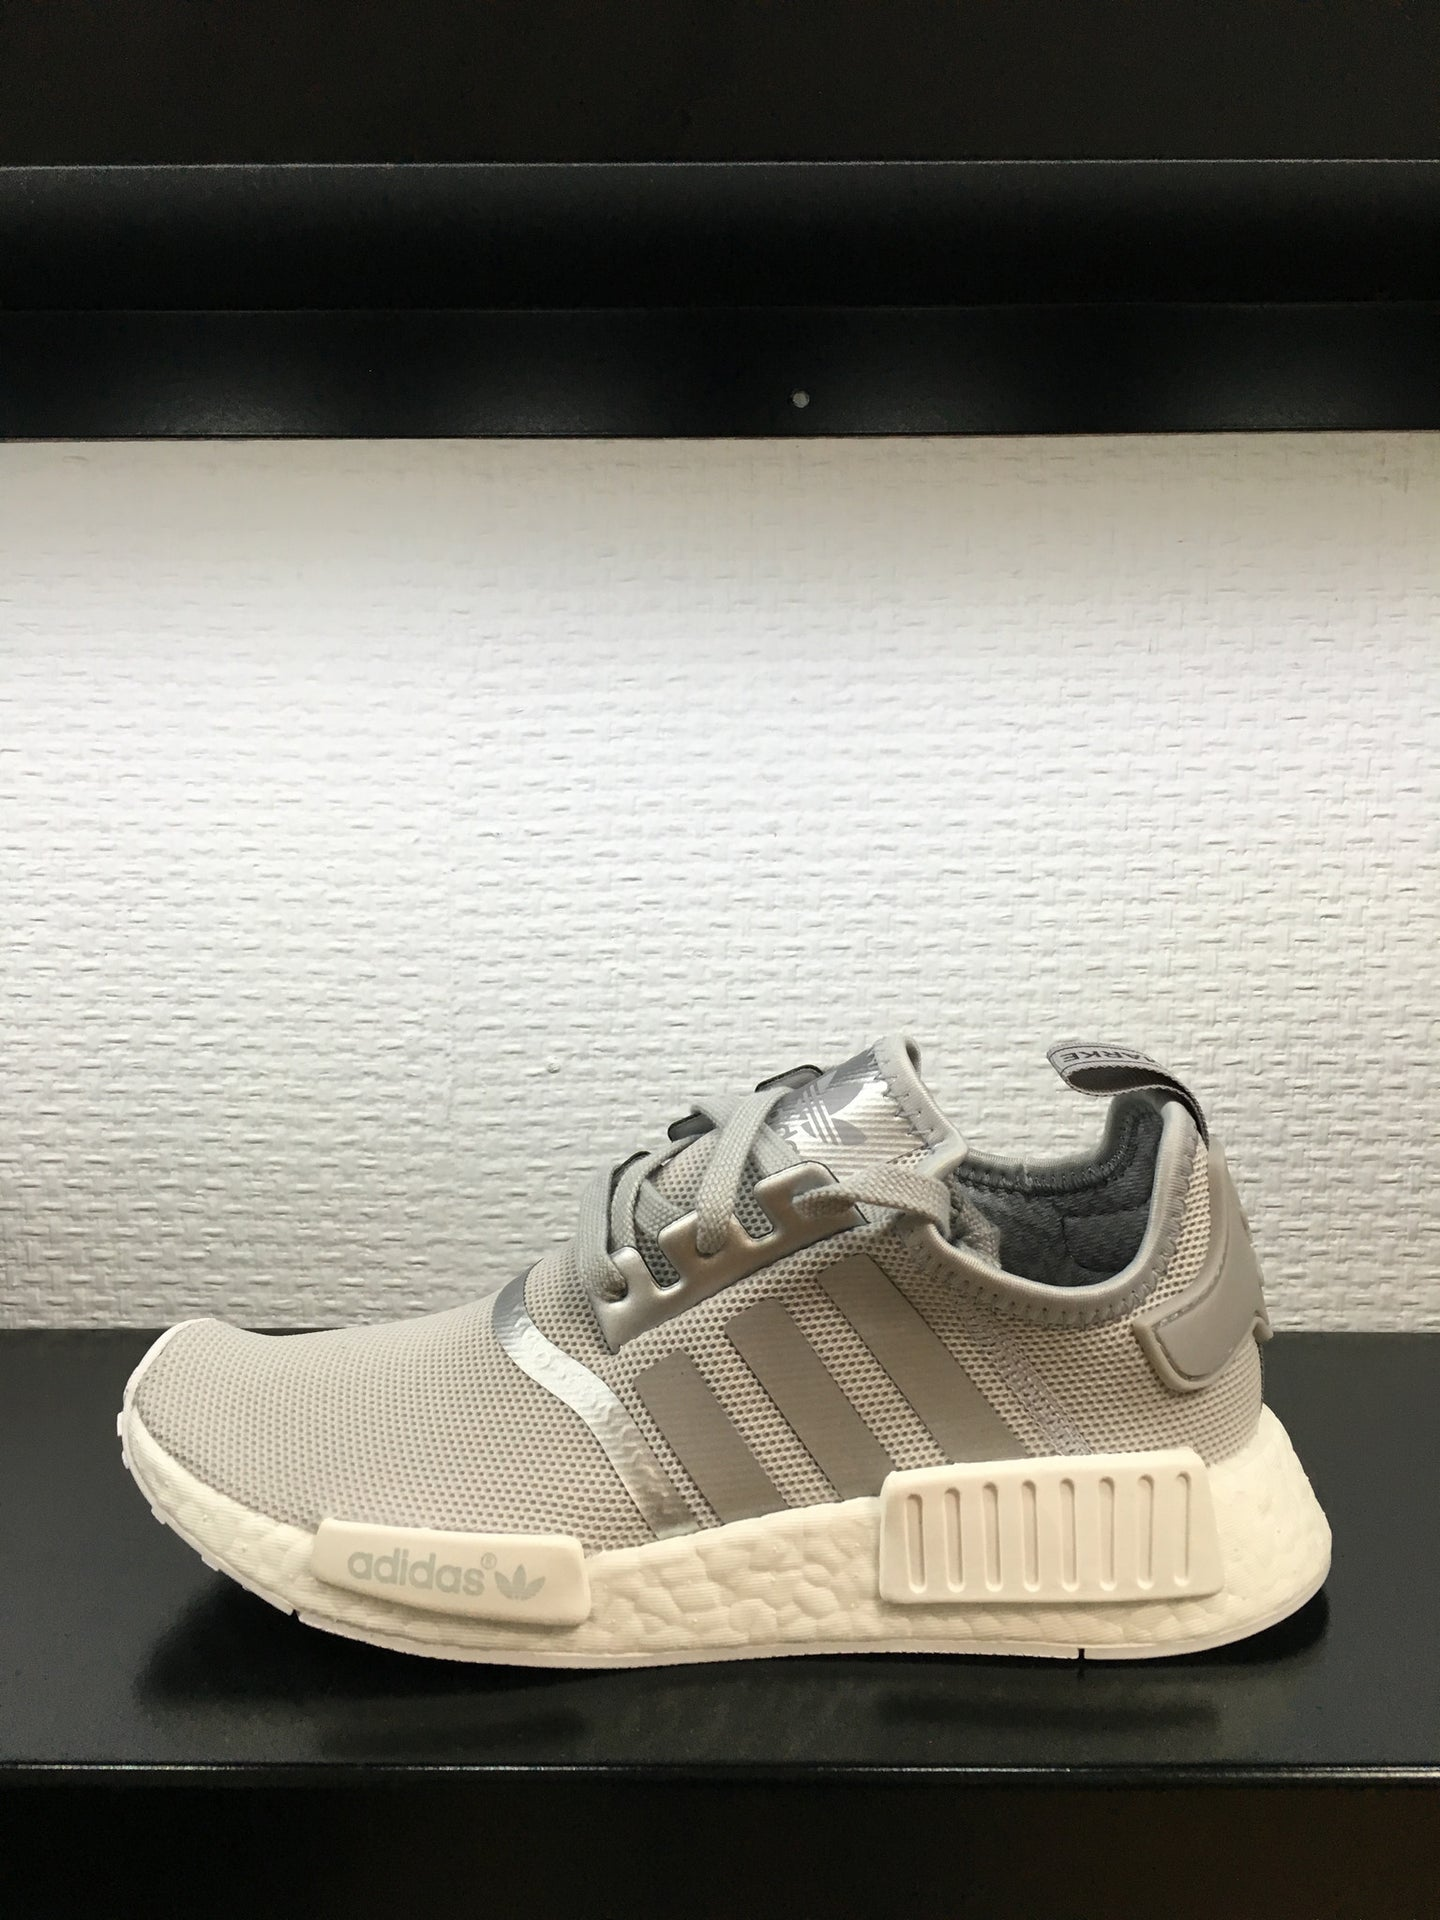 NMD R1 Women's-Grey/Silver/White